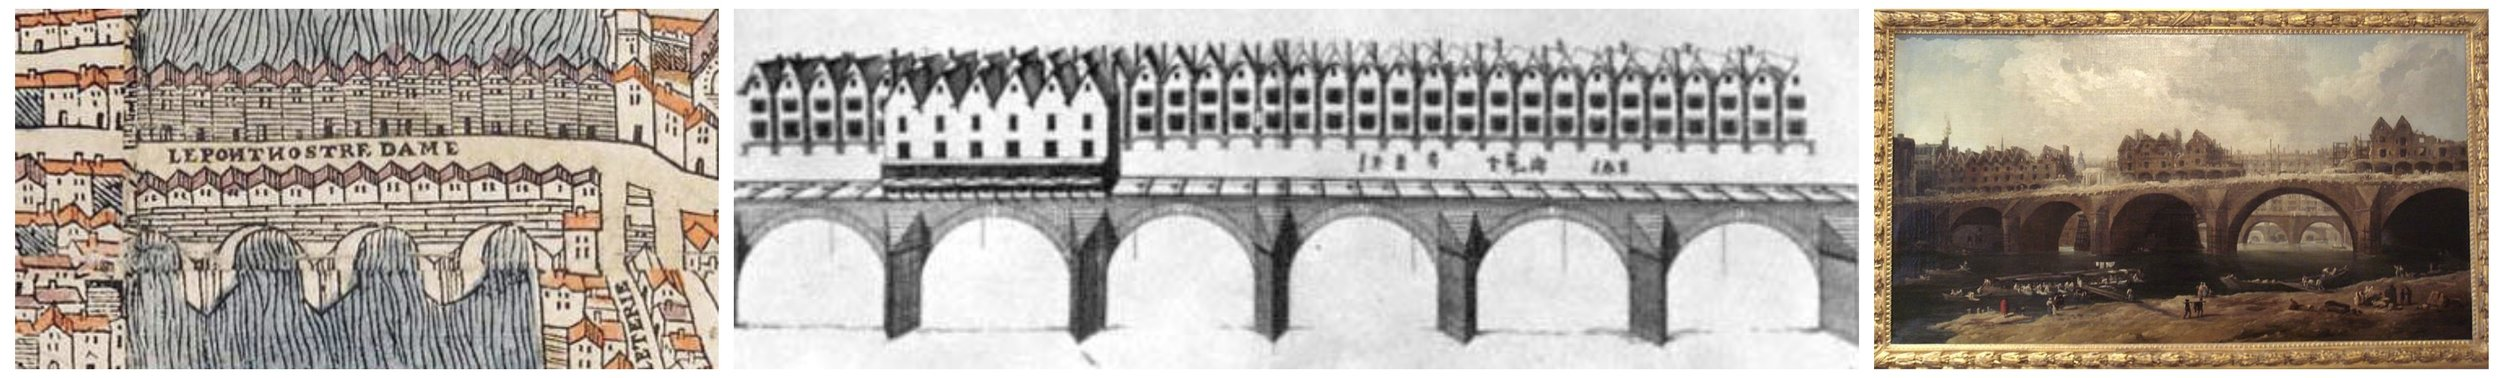 "From Wikipedia, ""Pont Notre-Dame"""